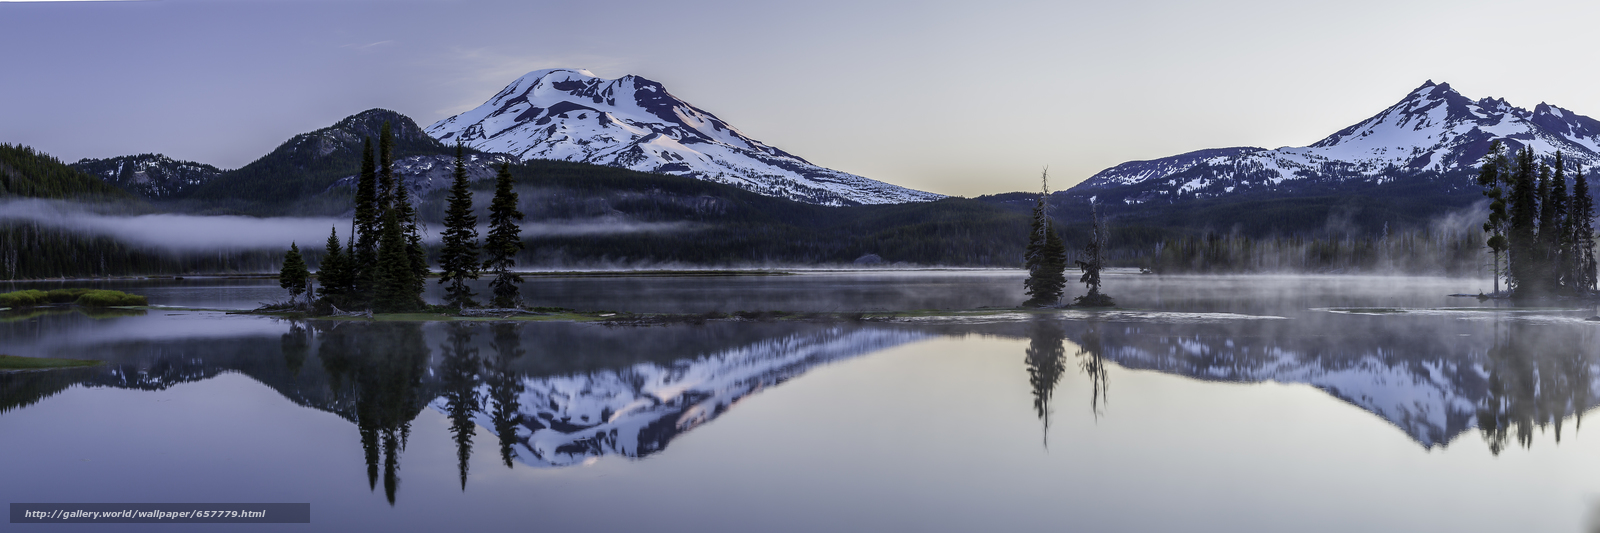 Download wallpaper Sparks lake,  Deschutes County,  Oregon,  panorama free desktop wallpaper in the resolution 8494x2831 — picture №657779